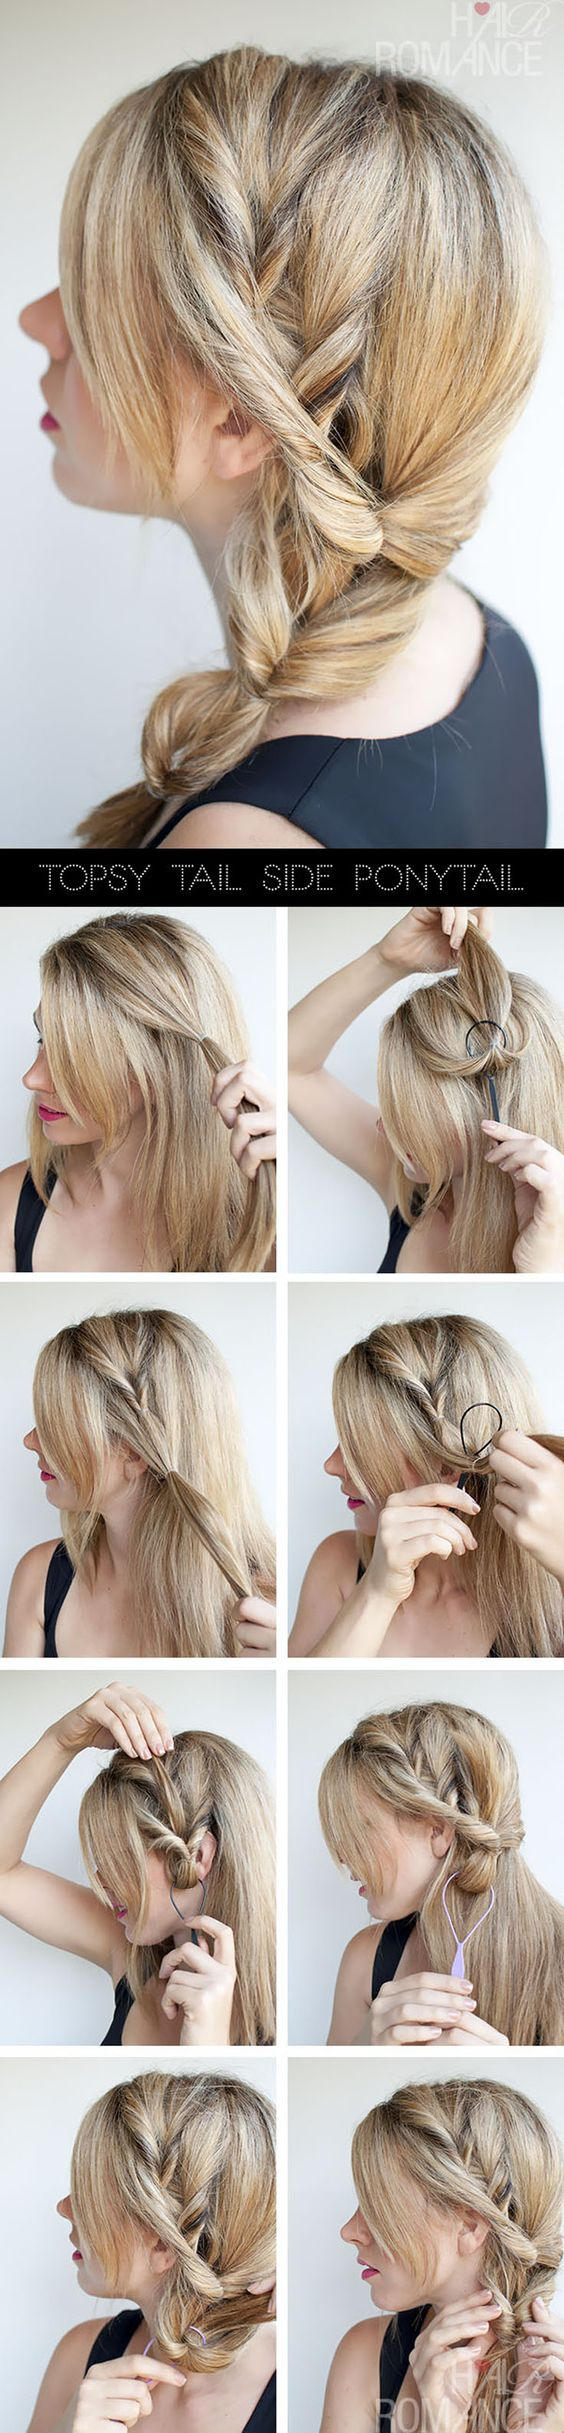 Lose Wrap Around Braid via